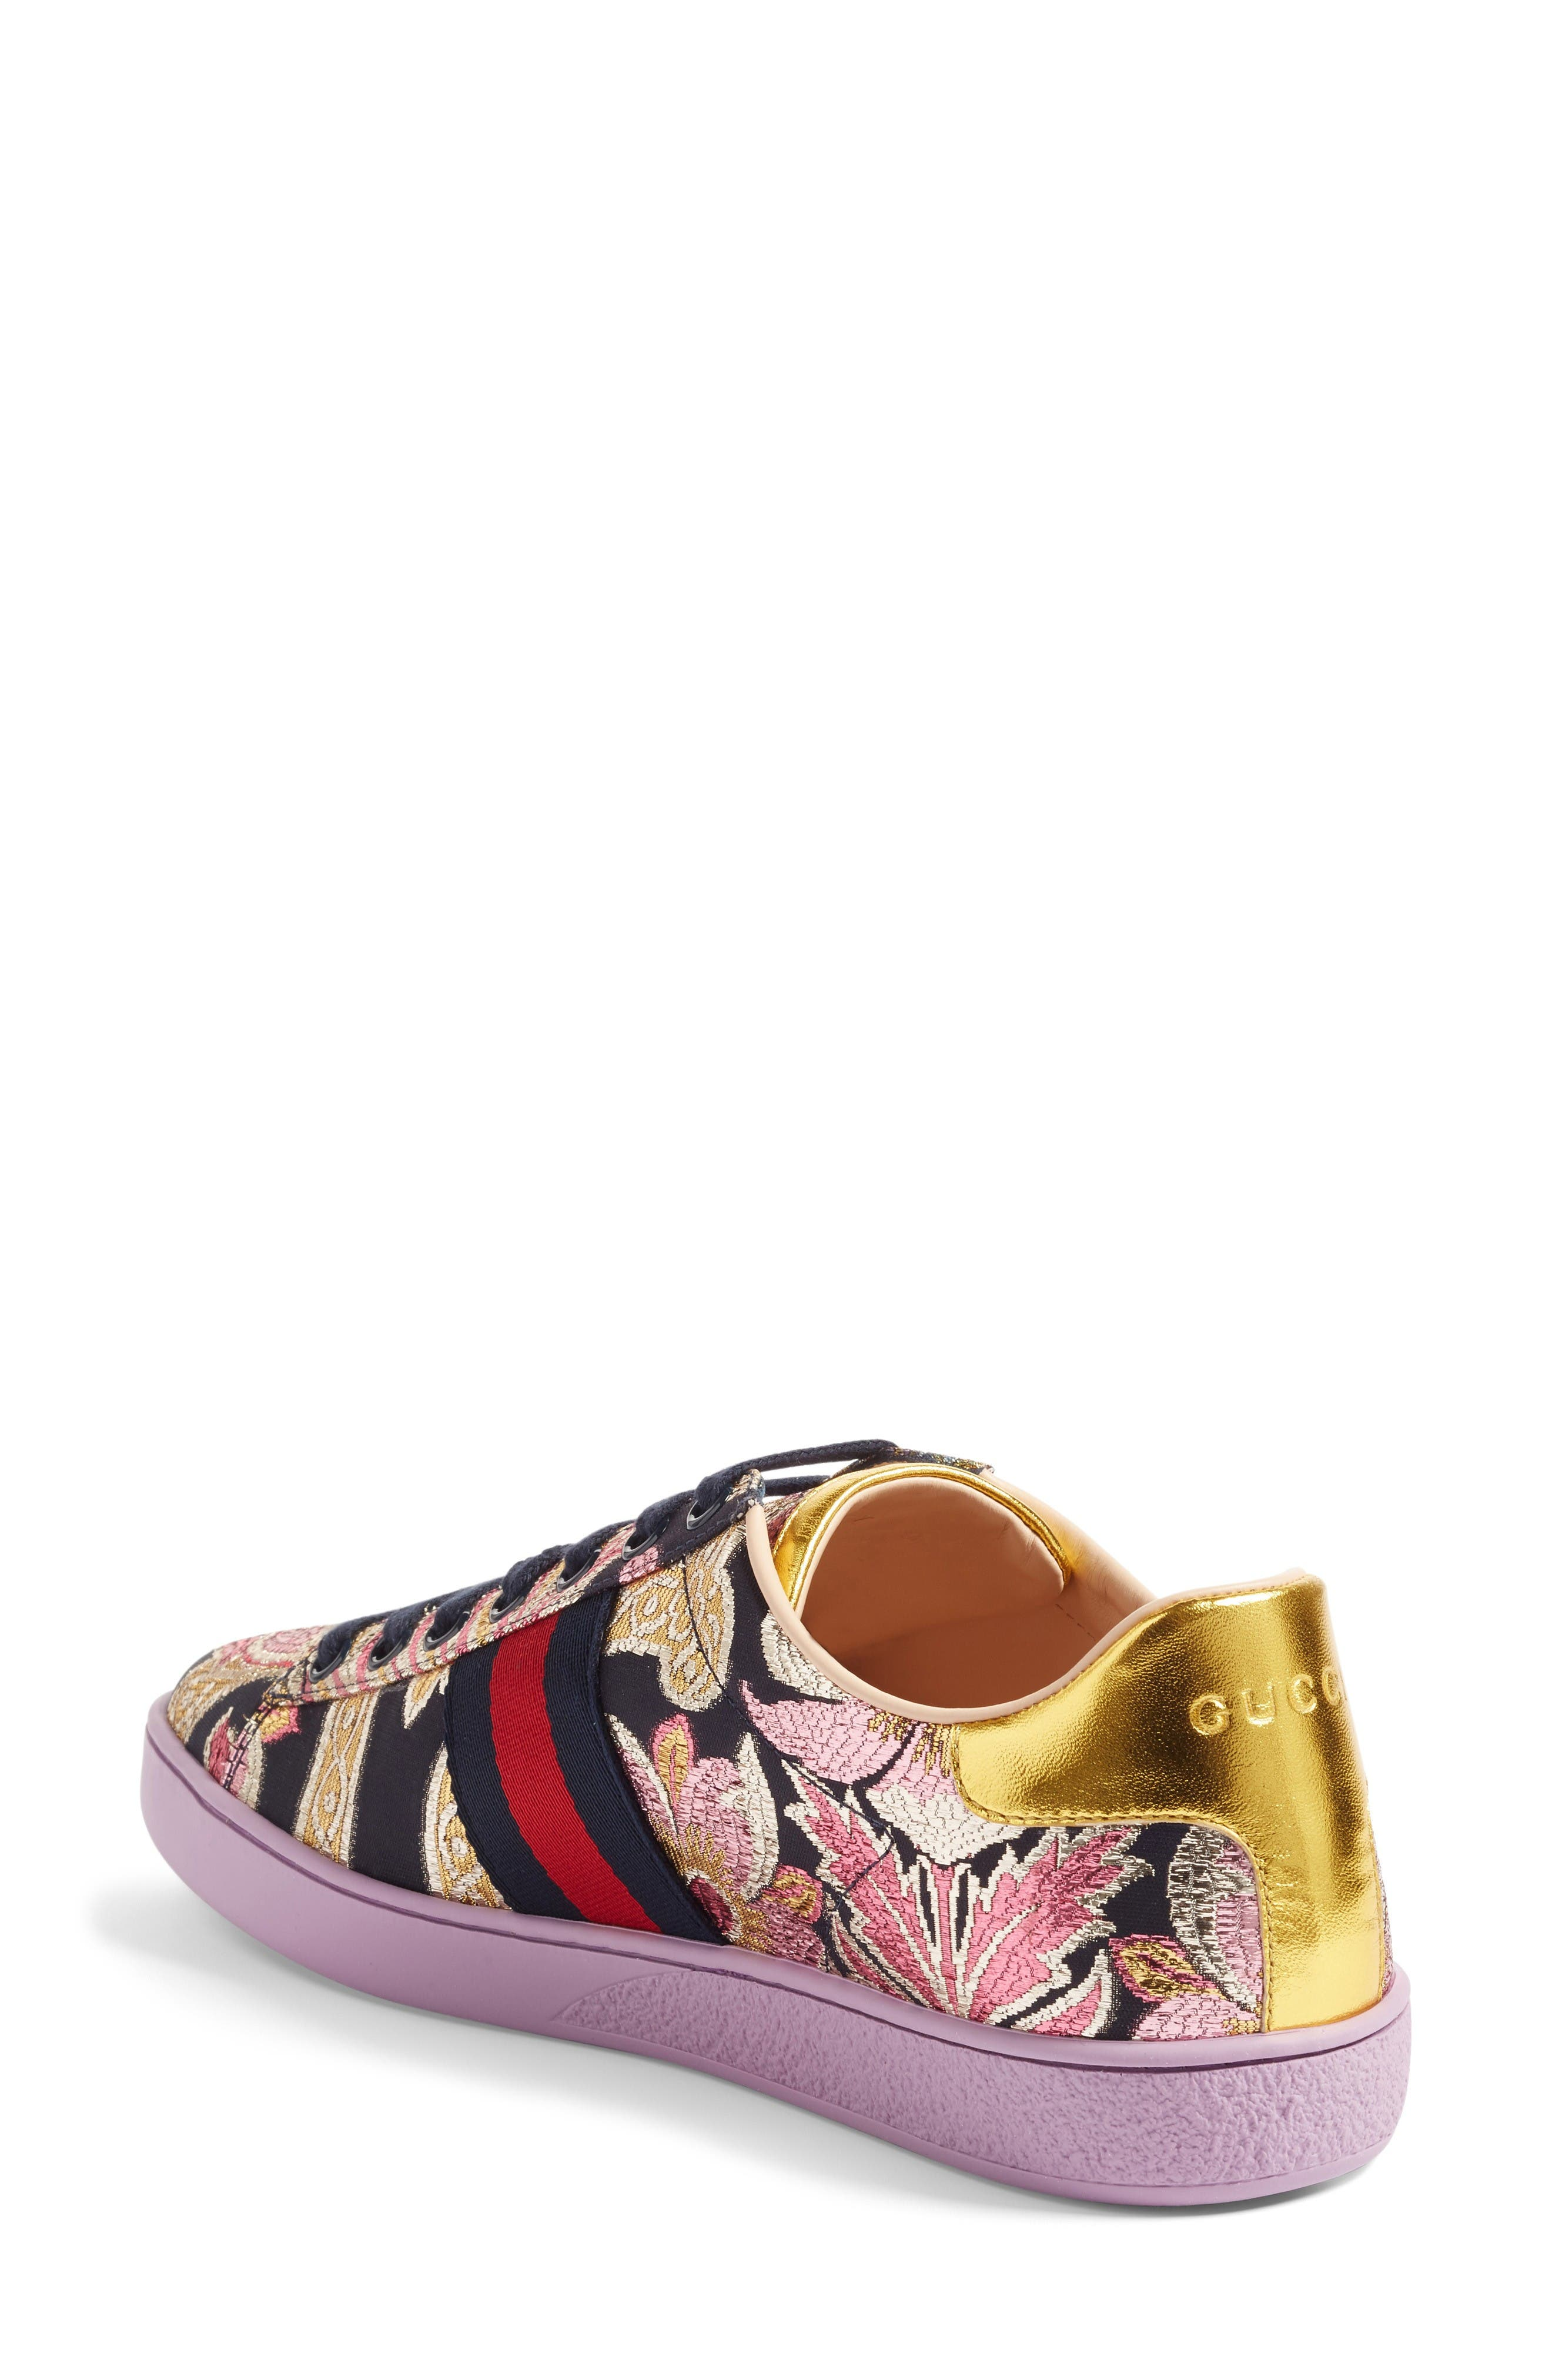 Alternate Image 2  - Gucci New Ace Floral Sneaker (Women)